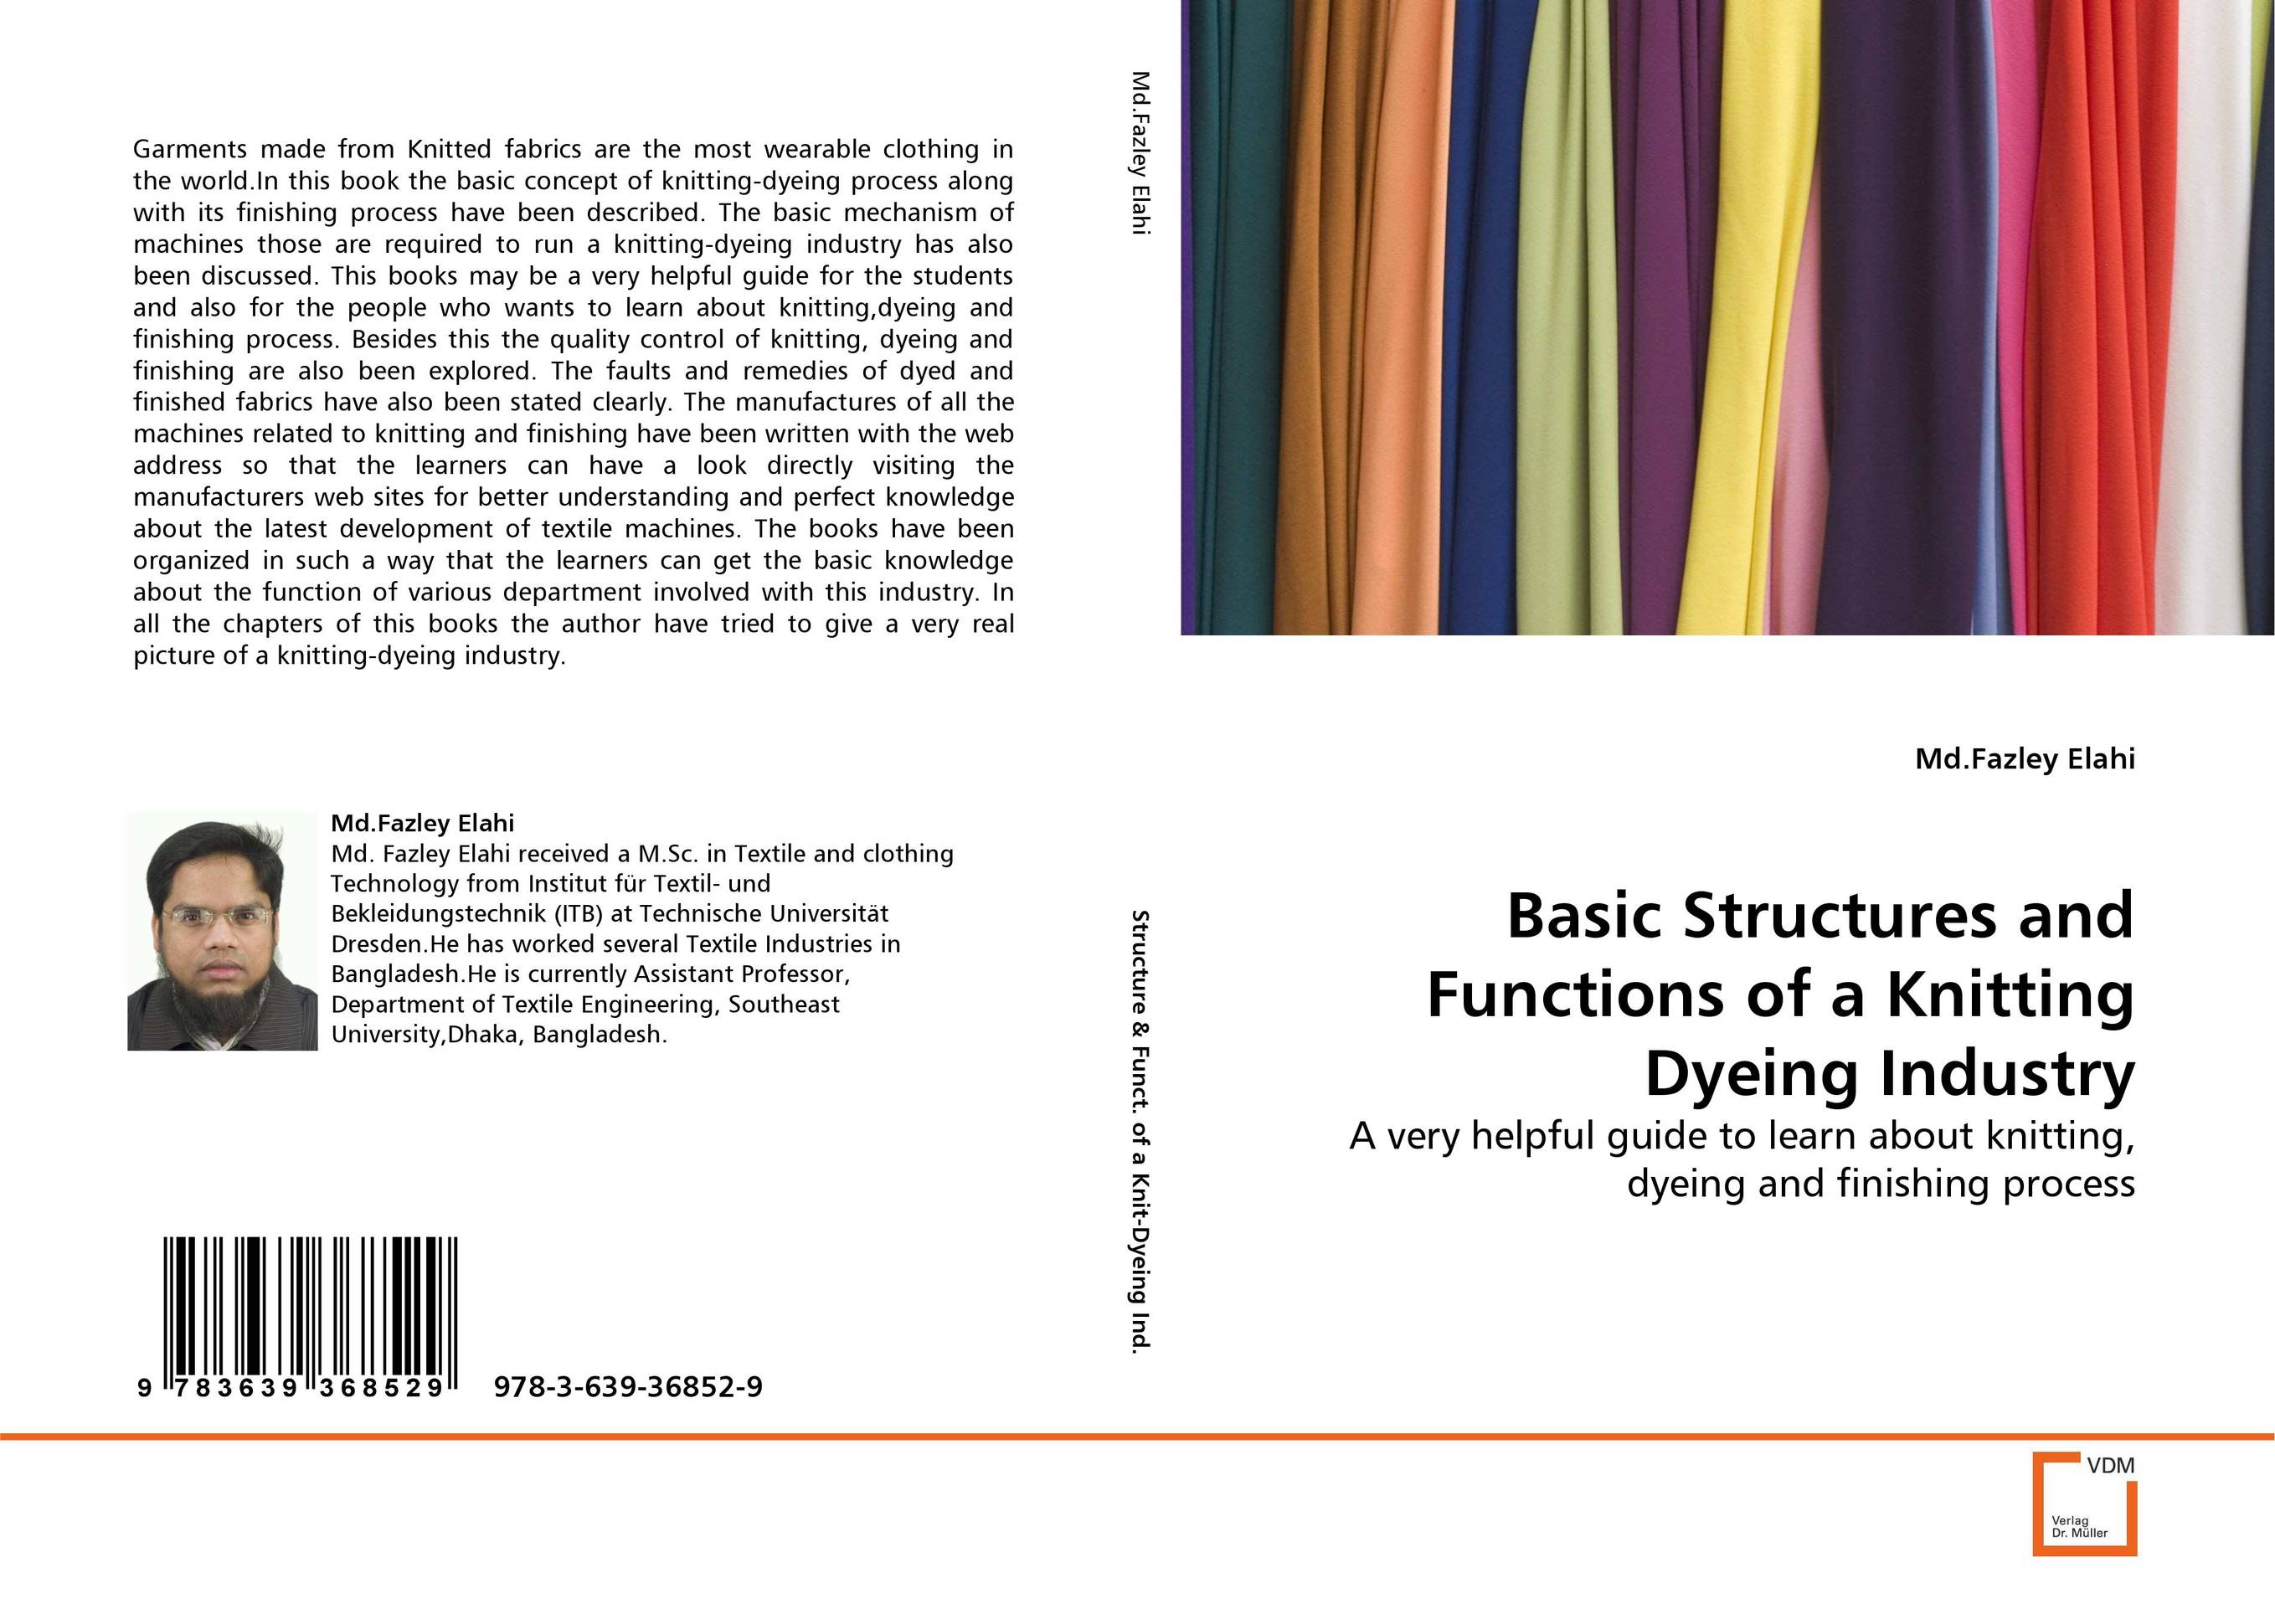 Basic Structures and Functions of a Knitting Dyeing Industry knitting the perfect fit